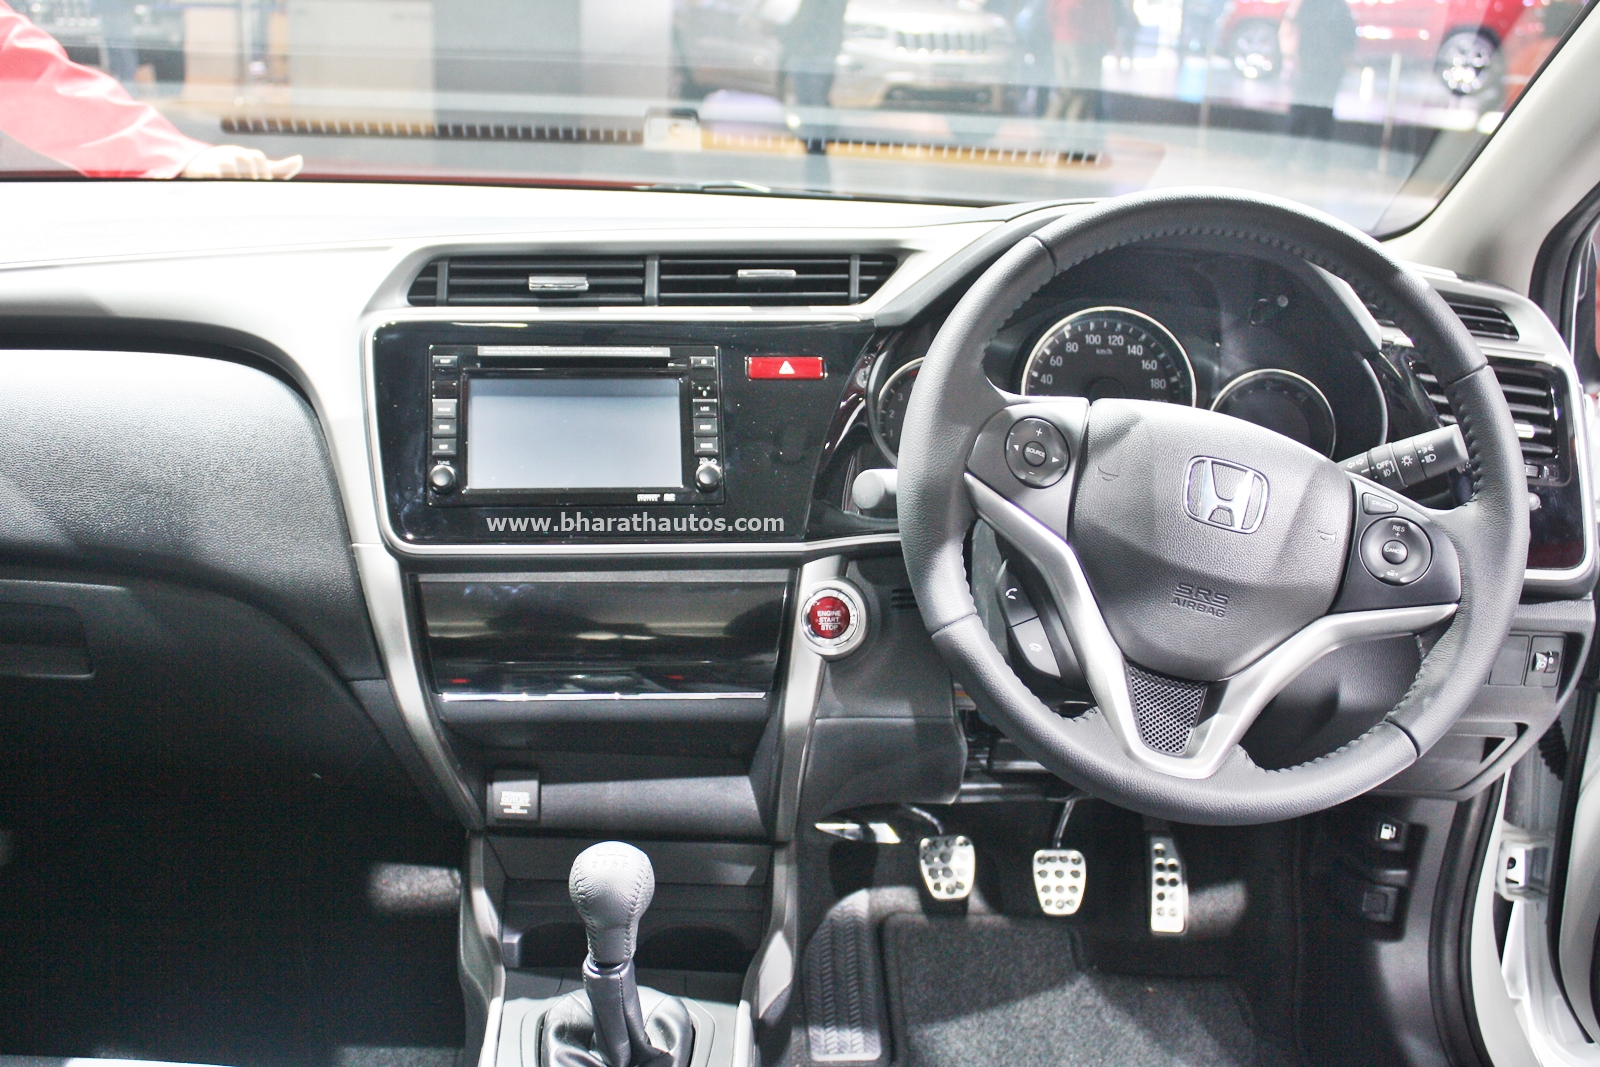 Honda City Kitted Up Model With Black Interior At 2016 Auto Expo